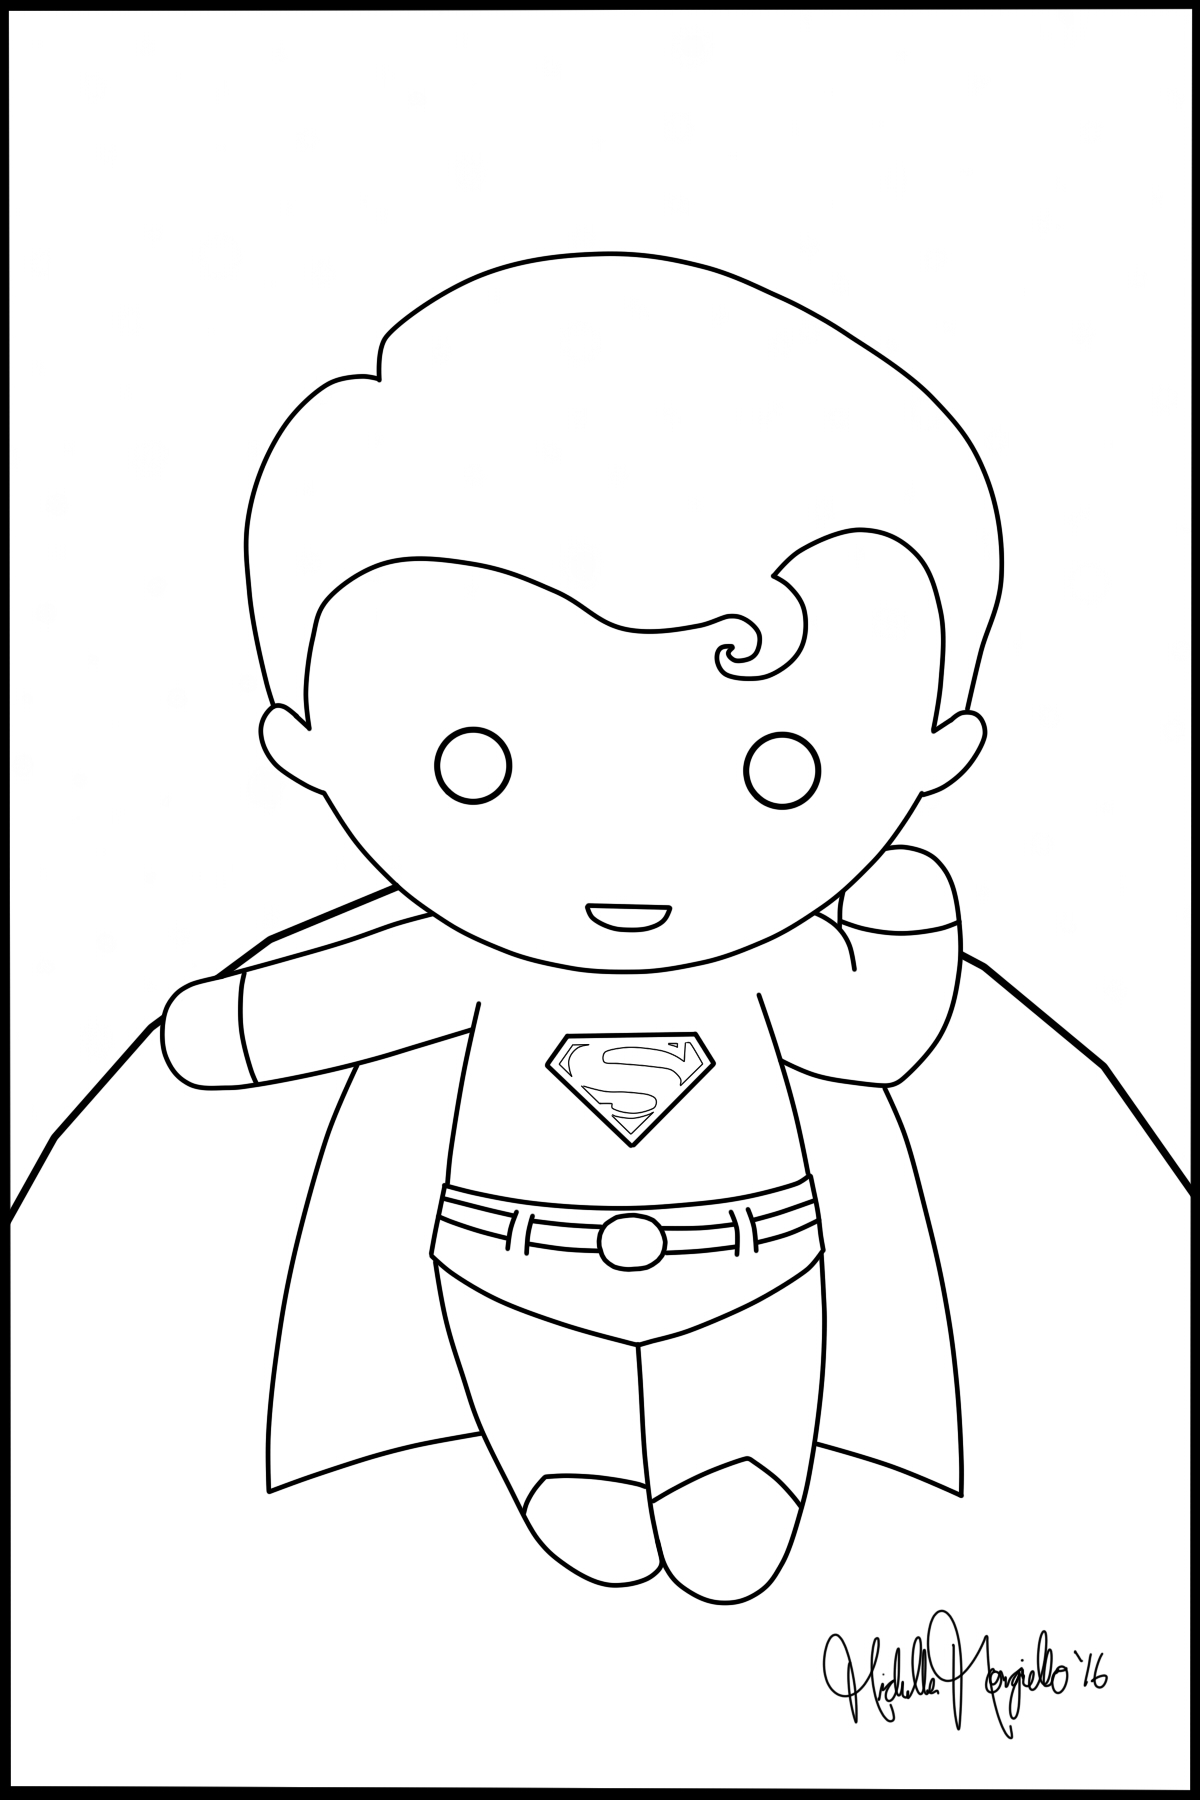 Coloring pages superman -  Chibi Superman Coloring Page By Kitty Stark